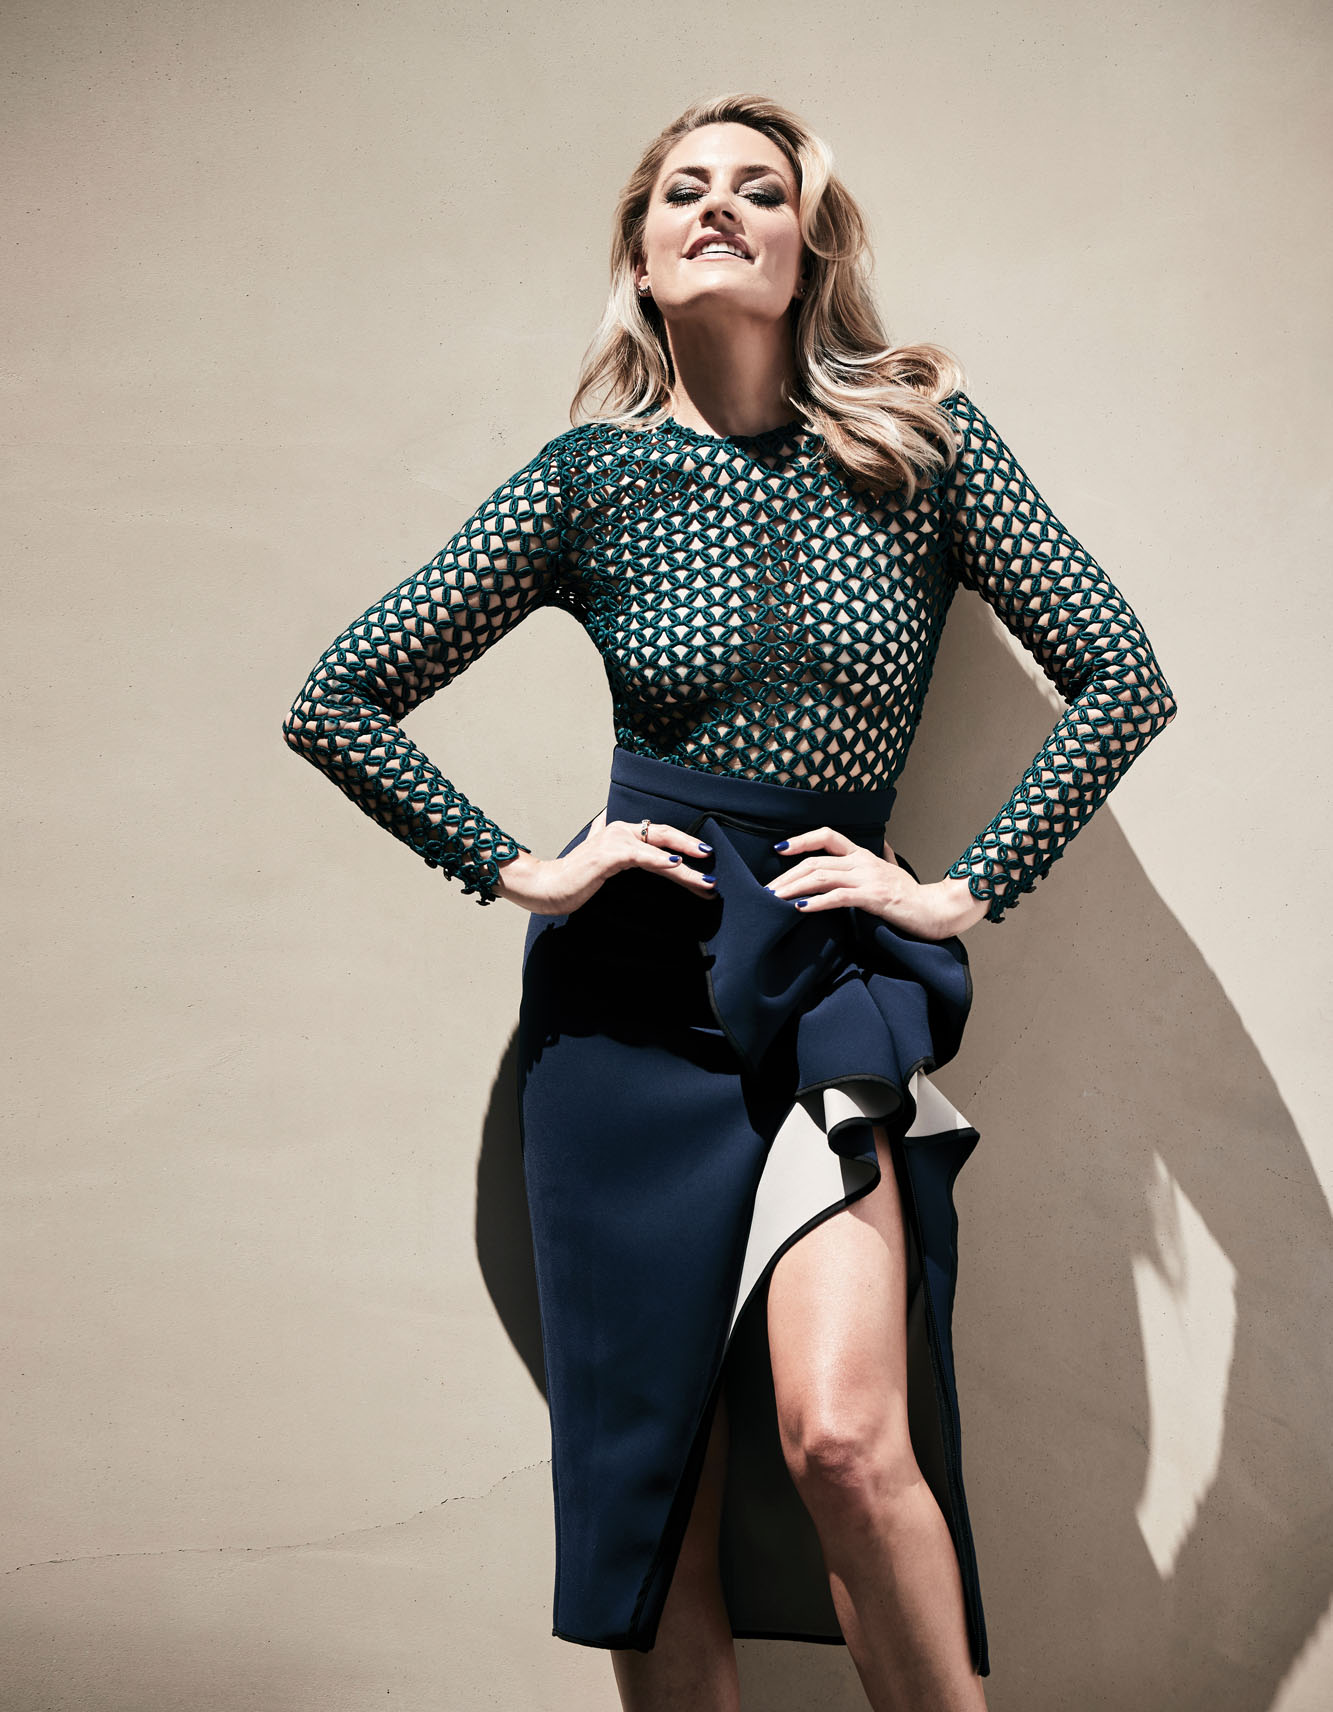 Mädchen Amick Is Absolutely Stunning In These Perfect Photos - Watch! Magazine Photos - CBS.com